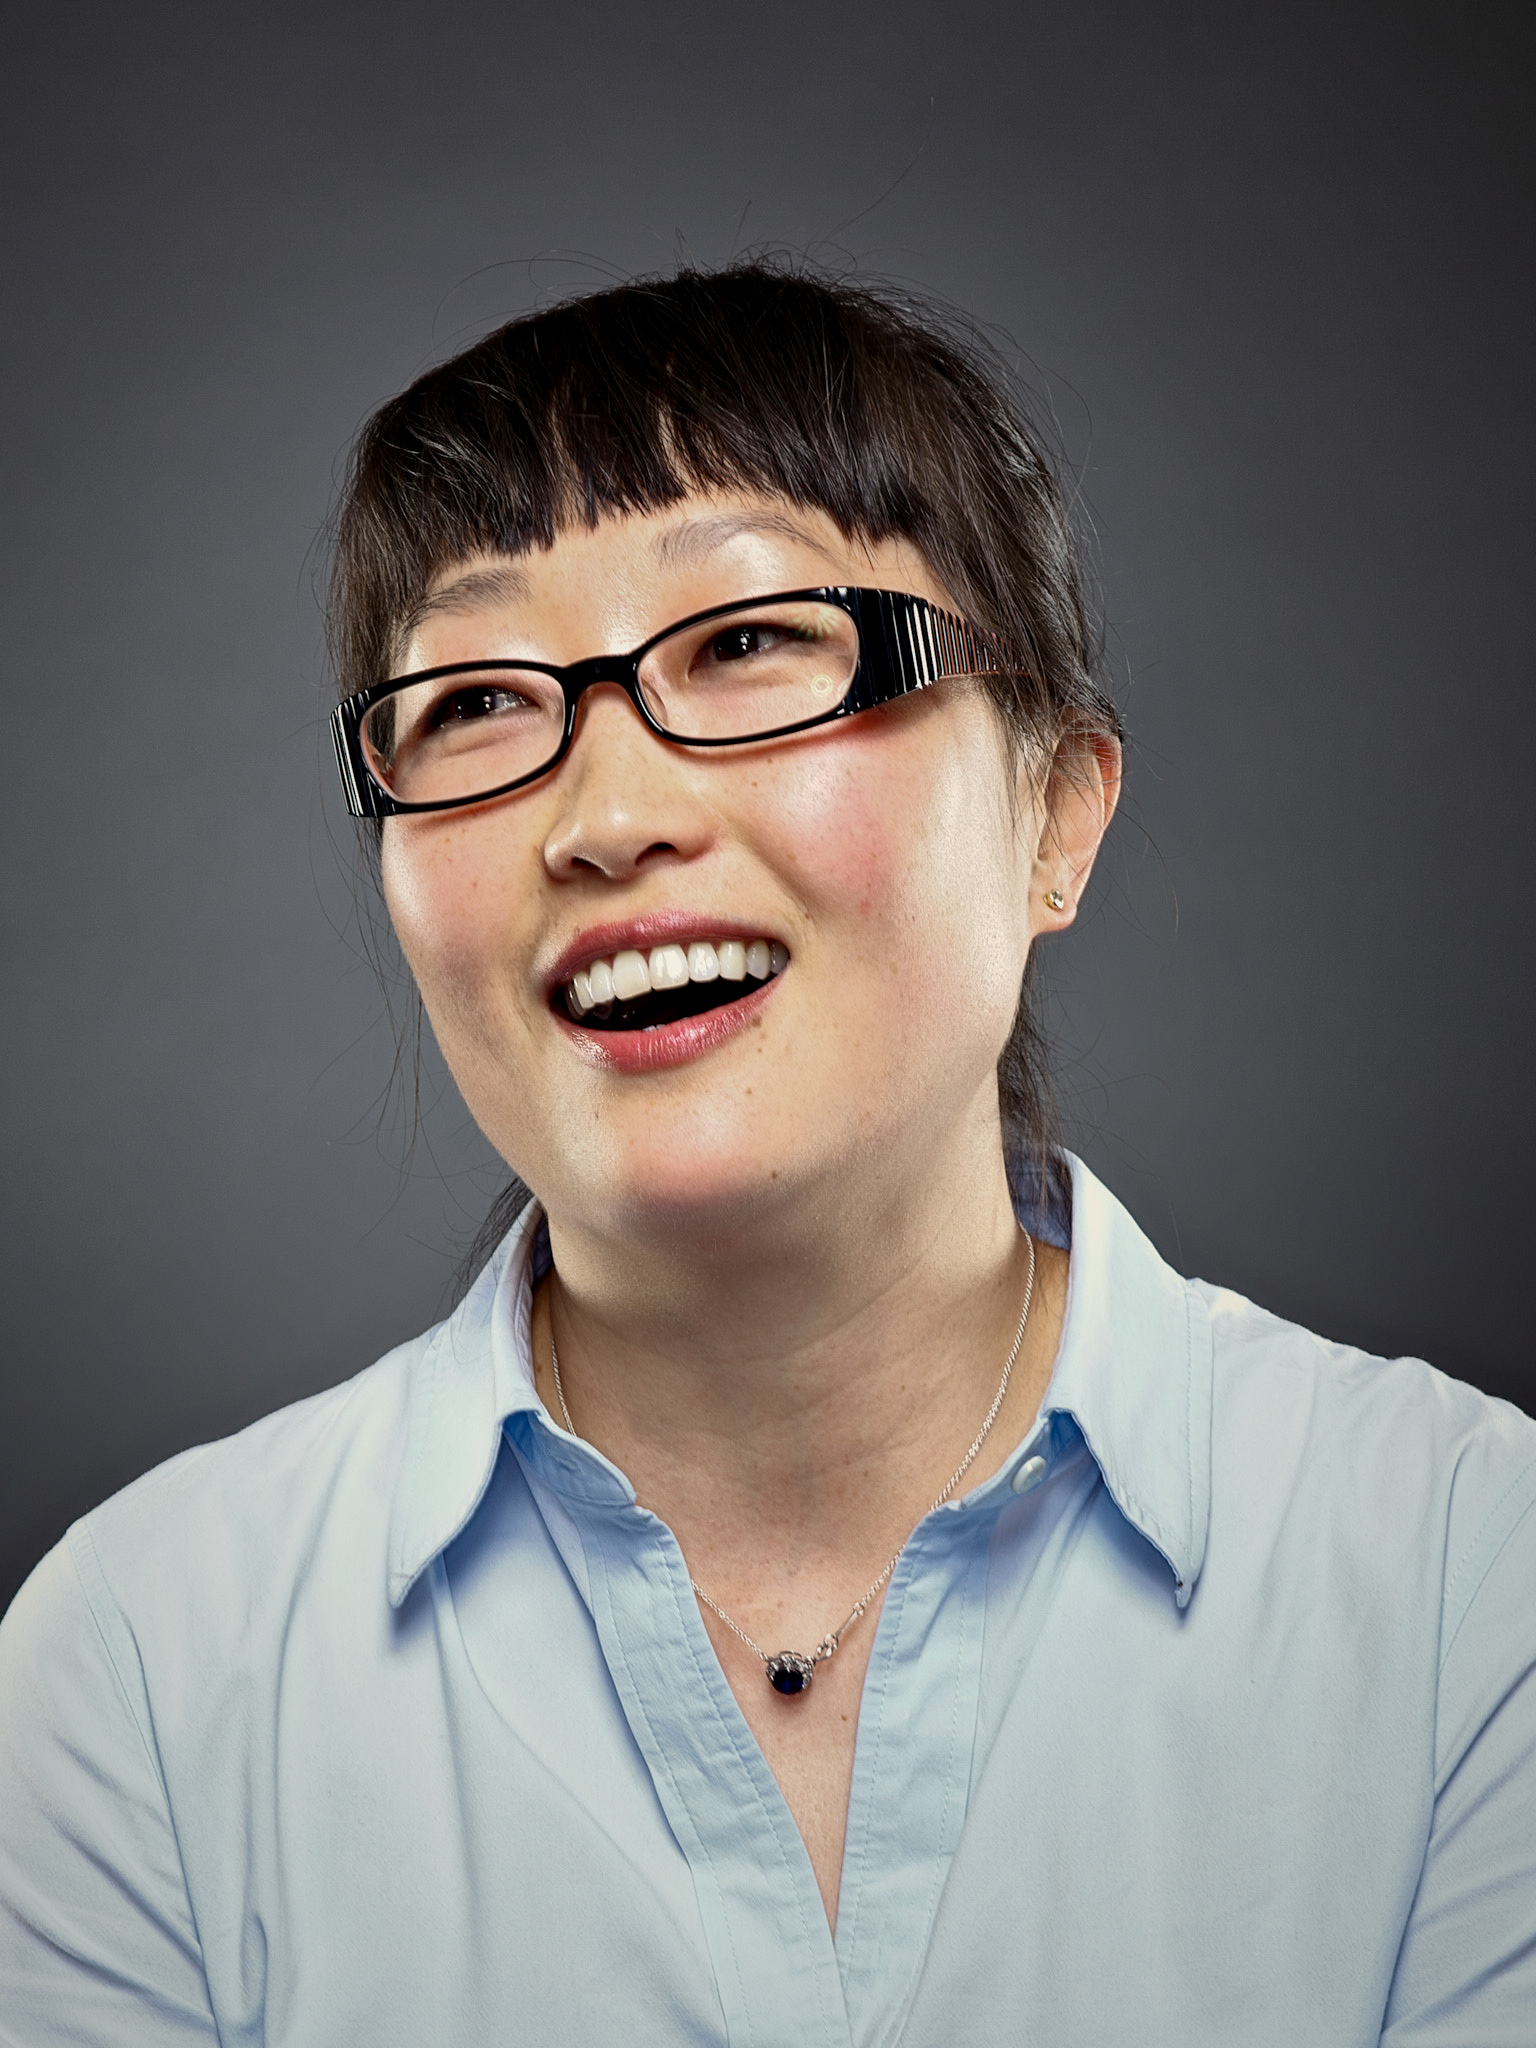 Woman with Glasses.jpg